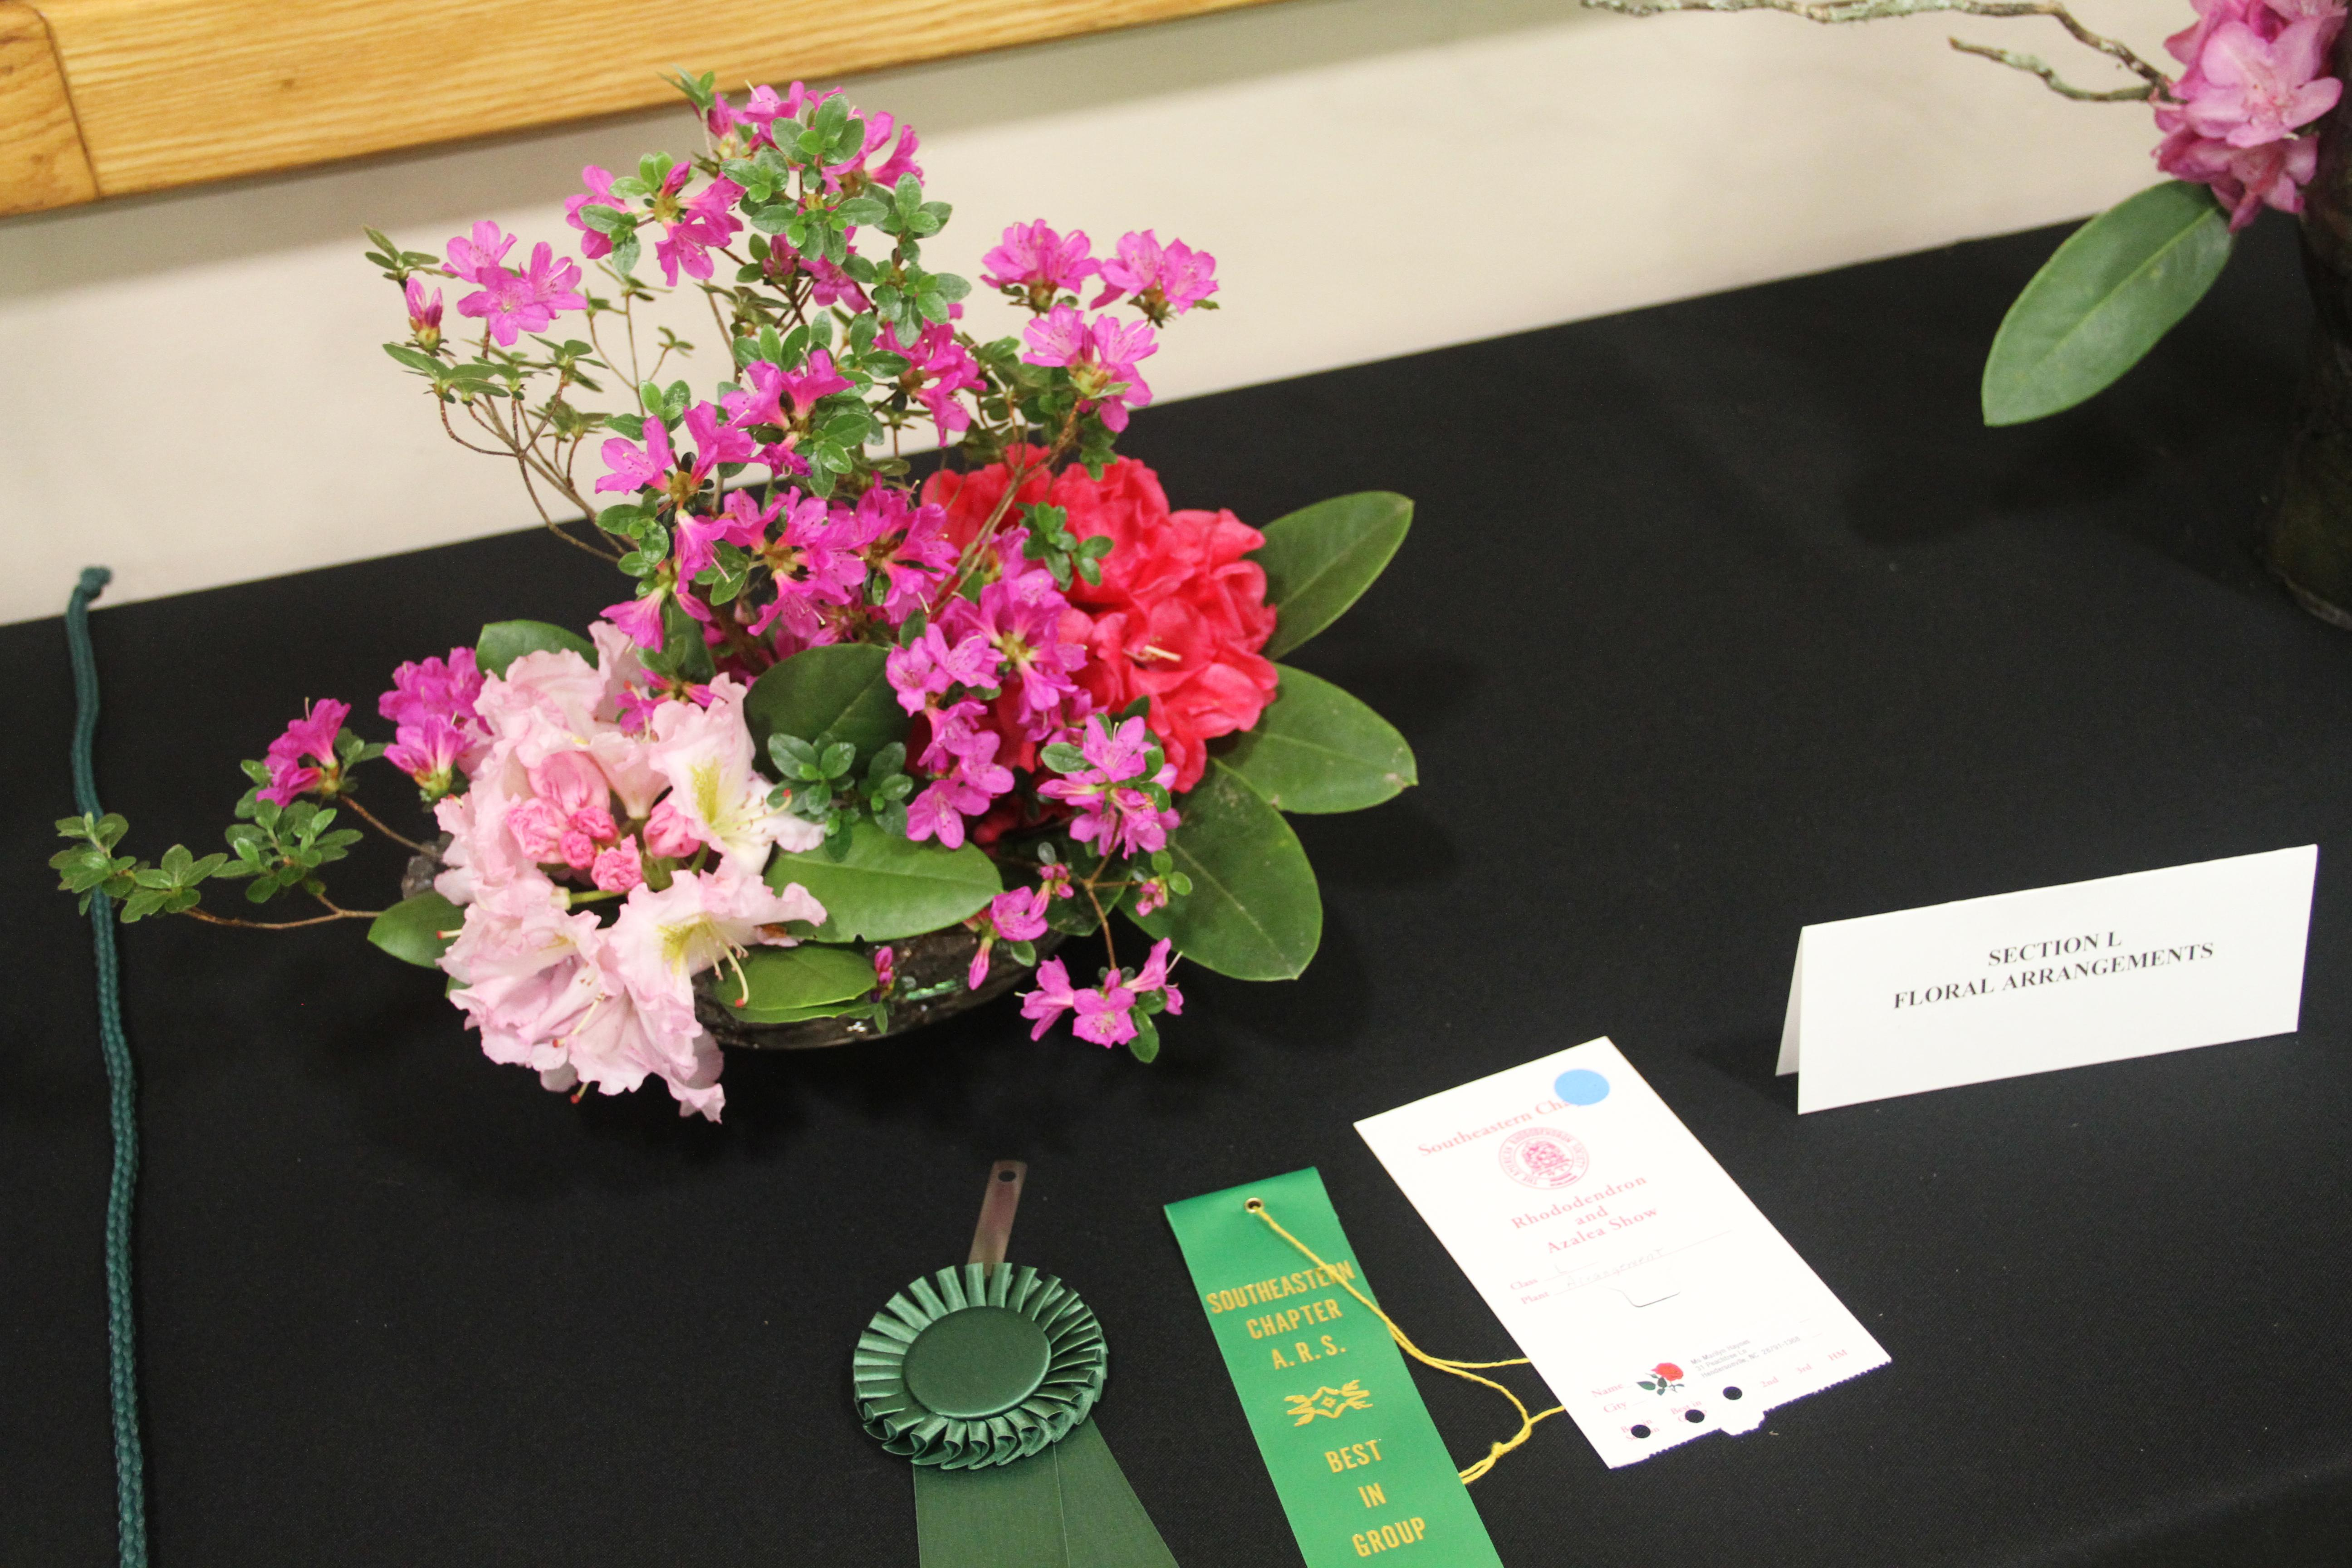 The North Carolina Arboretum hosts the 58th Annual Rhododendron and Azalea Flower Show on April 29-30, 2017. The event was presented by the American Rhododendron Society, Southeast Chapter. (Photo credit: Kelly Doty)